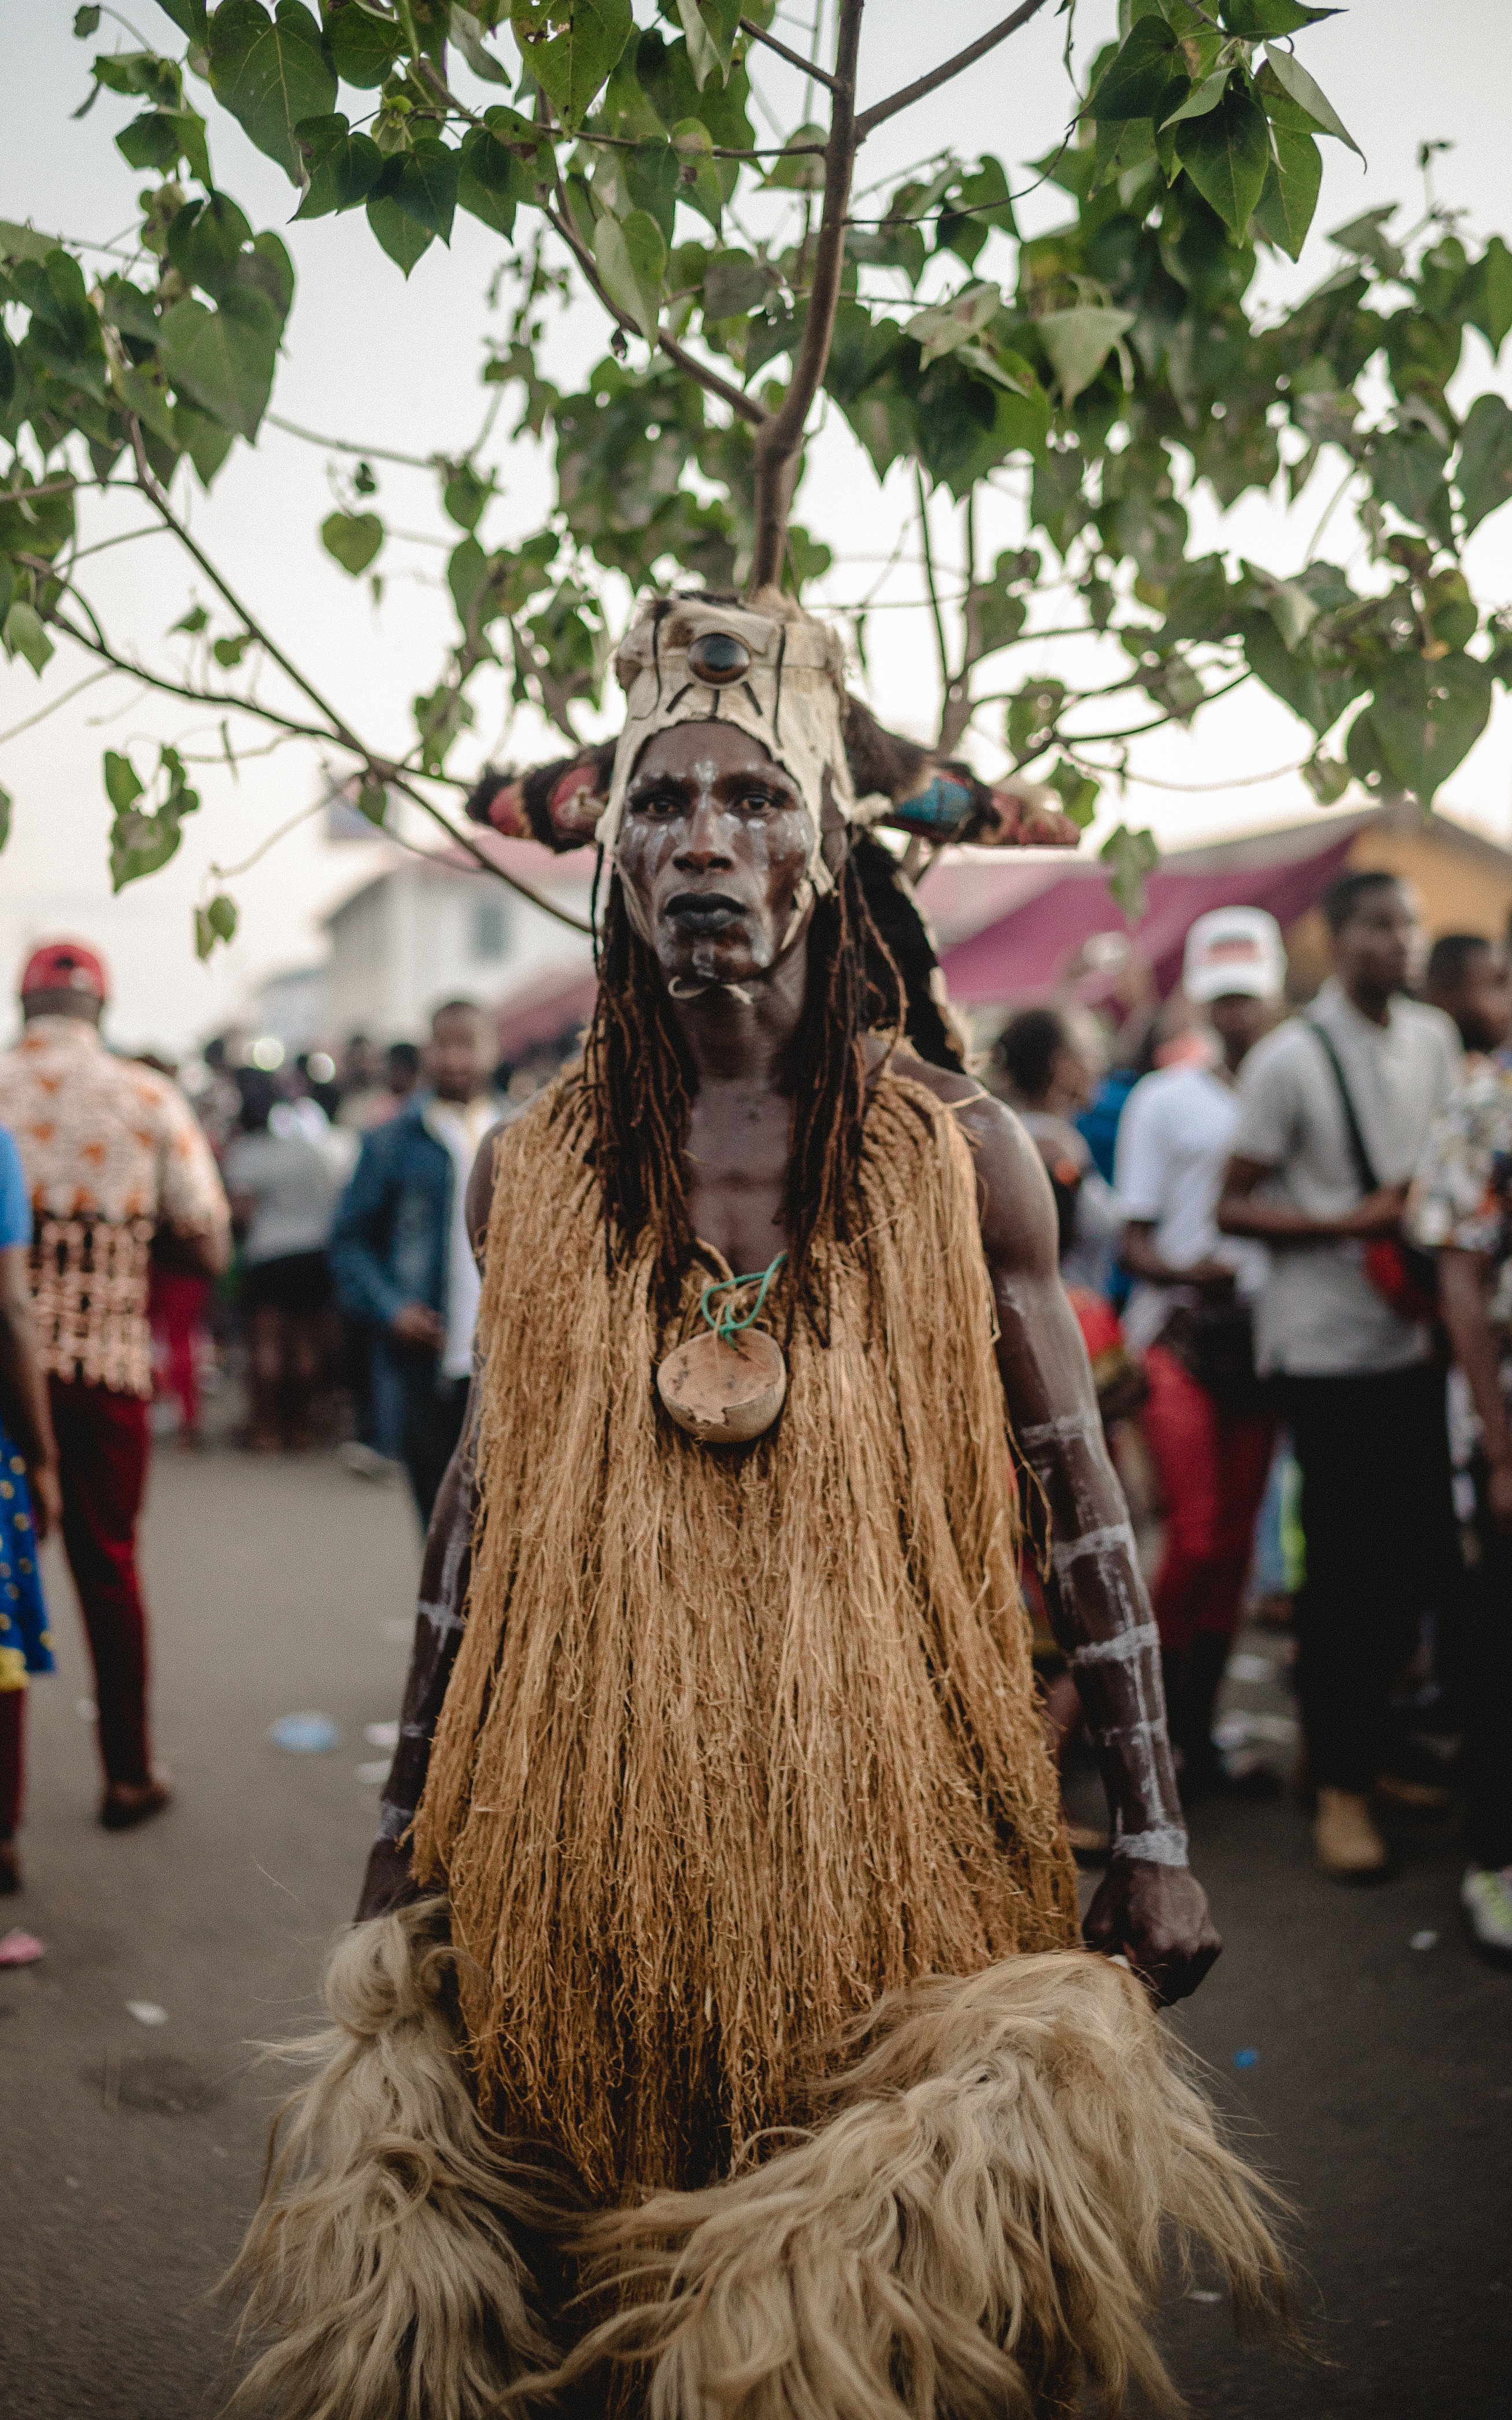 Chale Wote Street Art Festival 2018, Jamestown, Accra. Photo Credit: Eric Atie for The Sole Adventurer